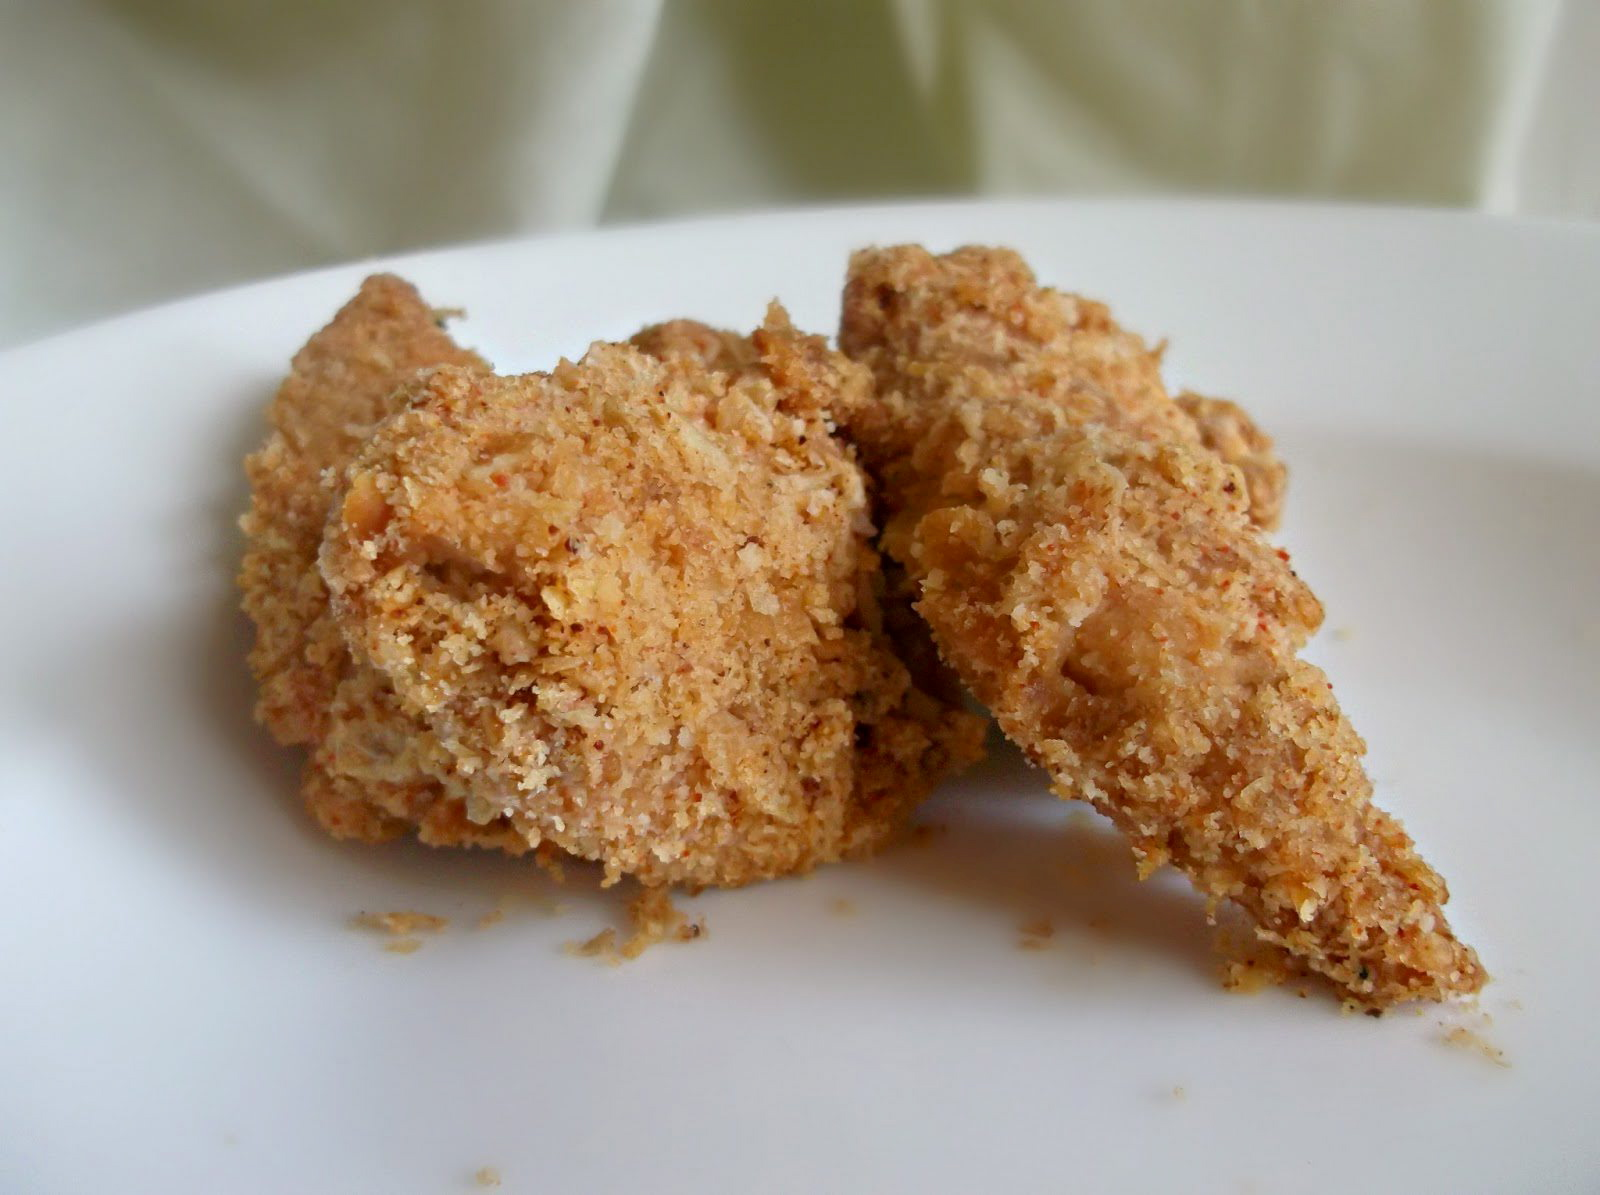 Love fried chicken? This secret recipe helped one couple lose 16 STONE!